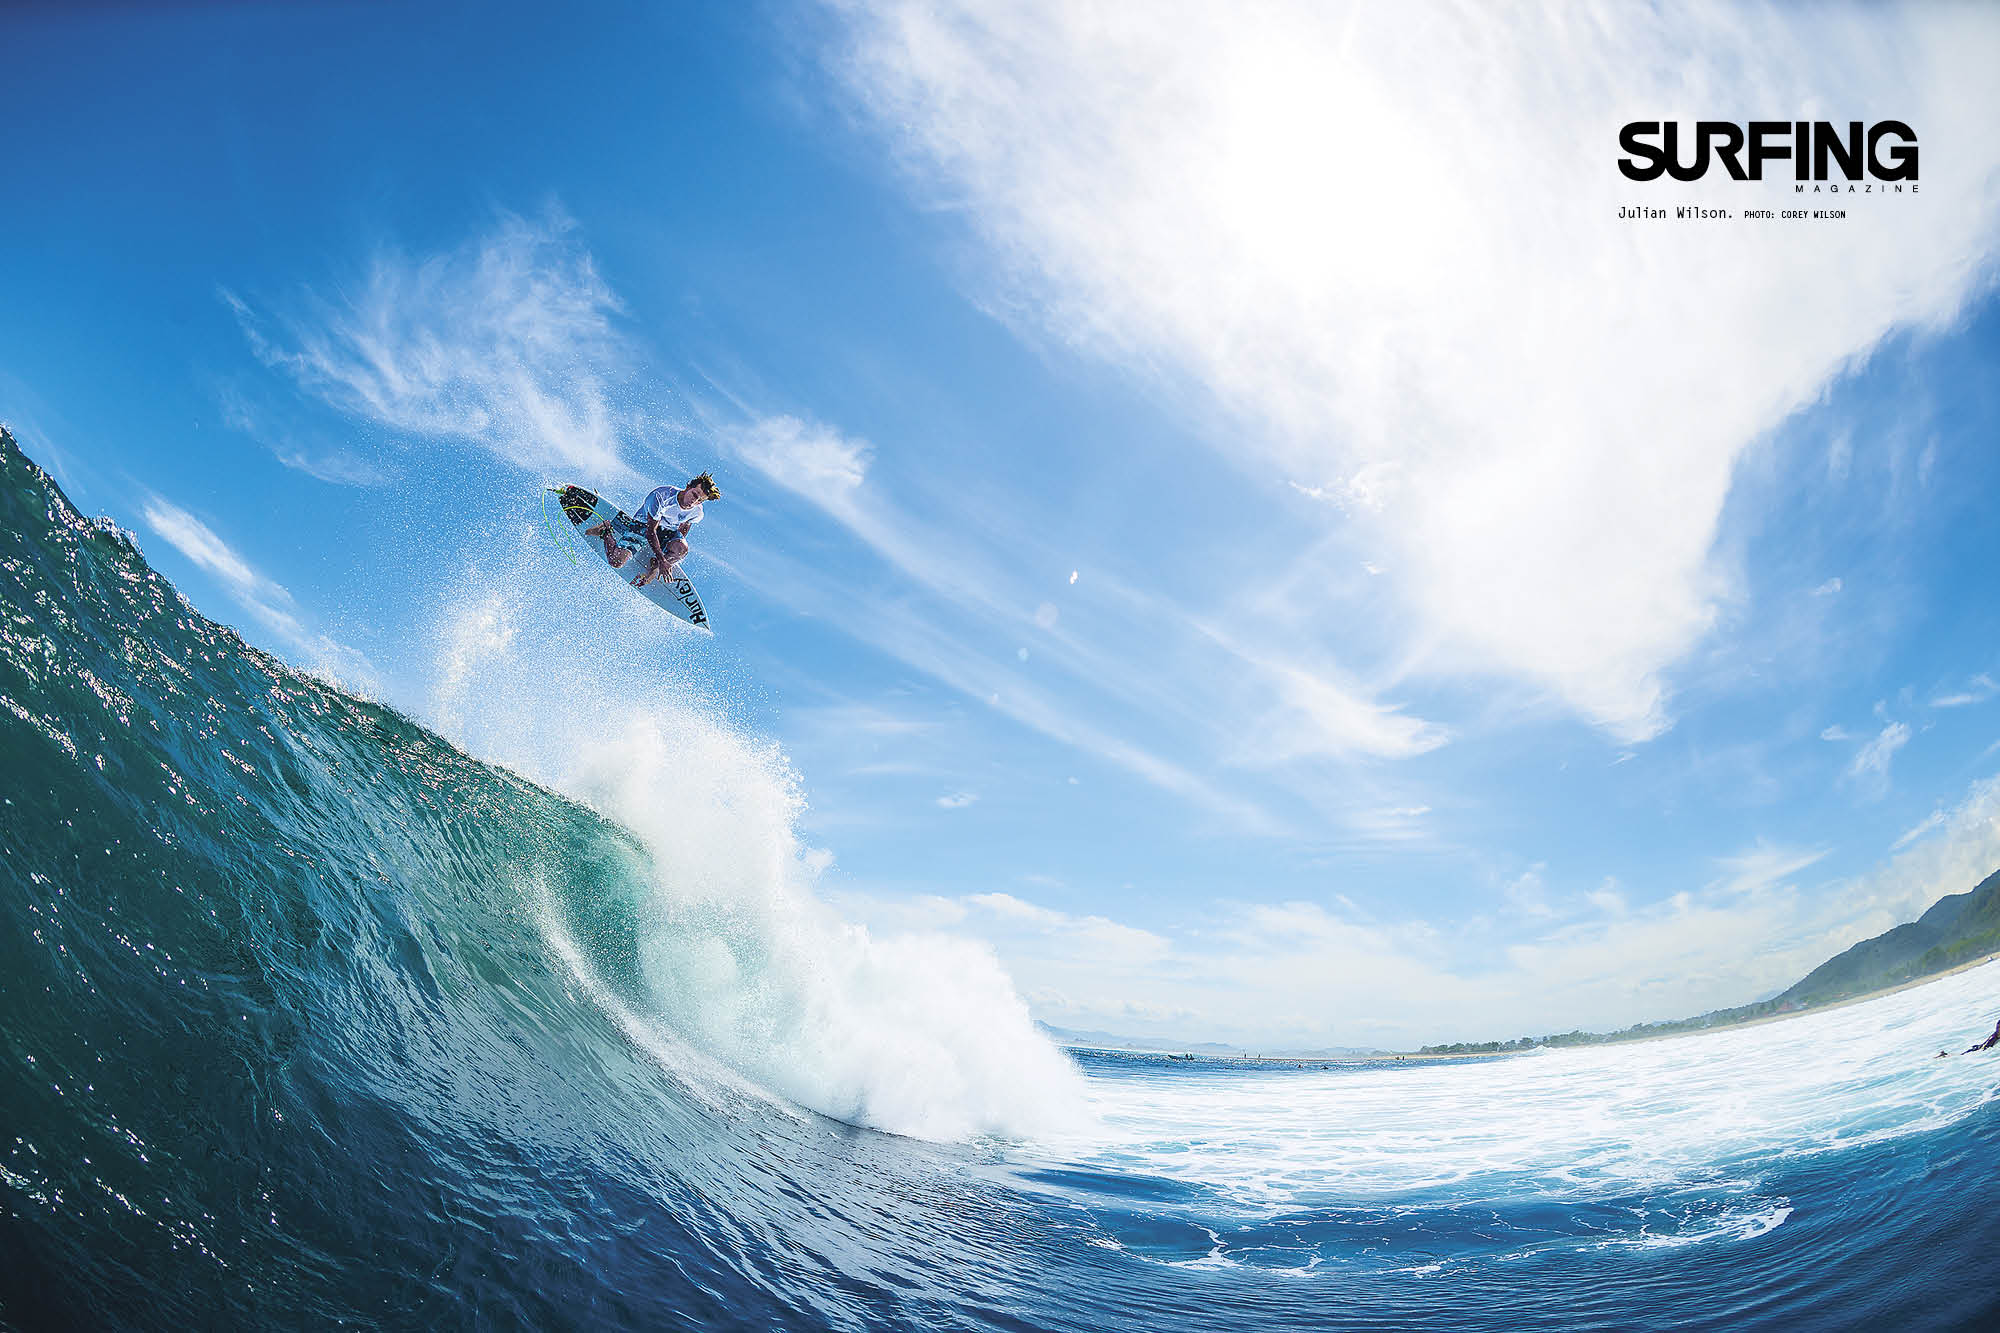 SURFING Wallpaper Issue 1 2015